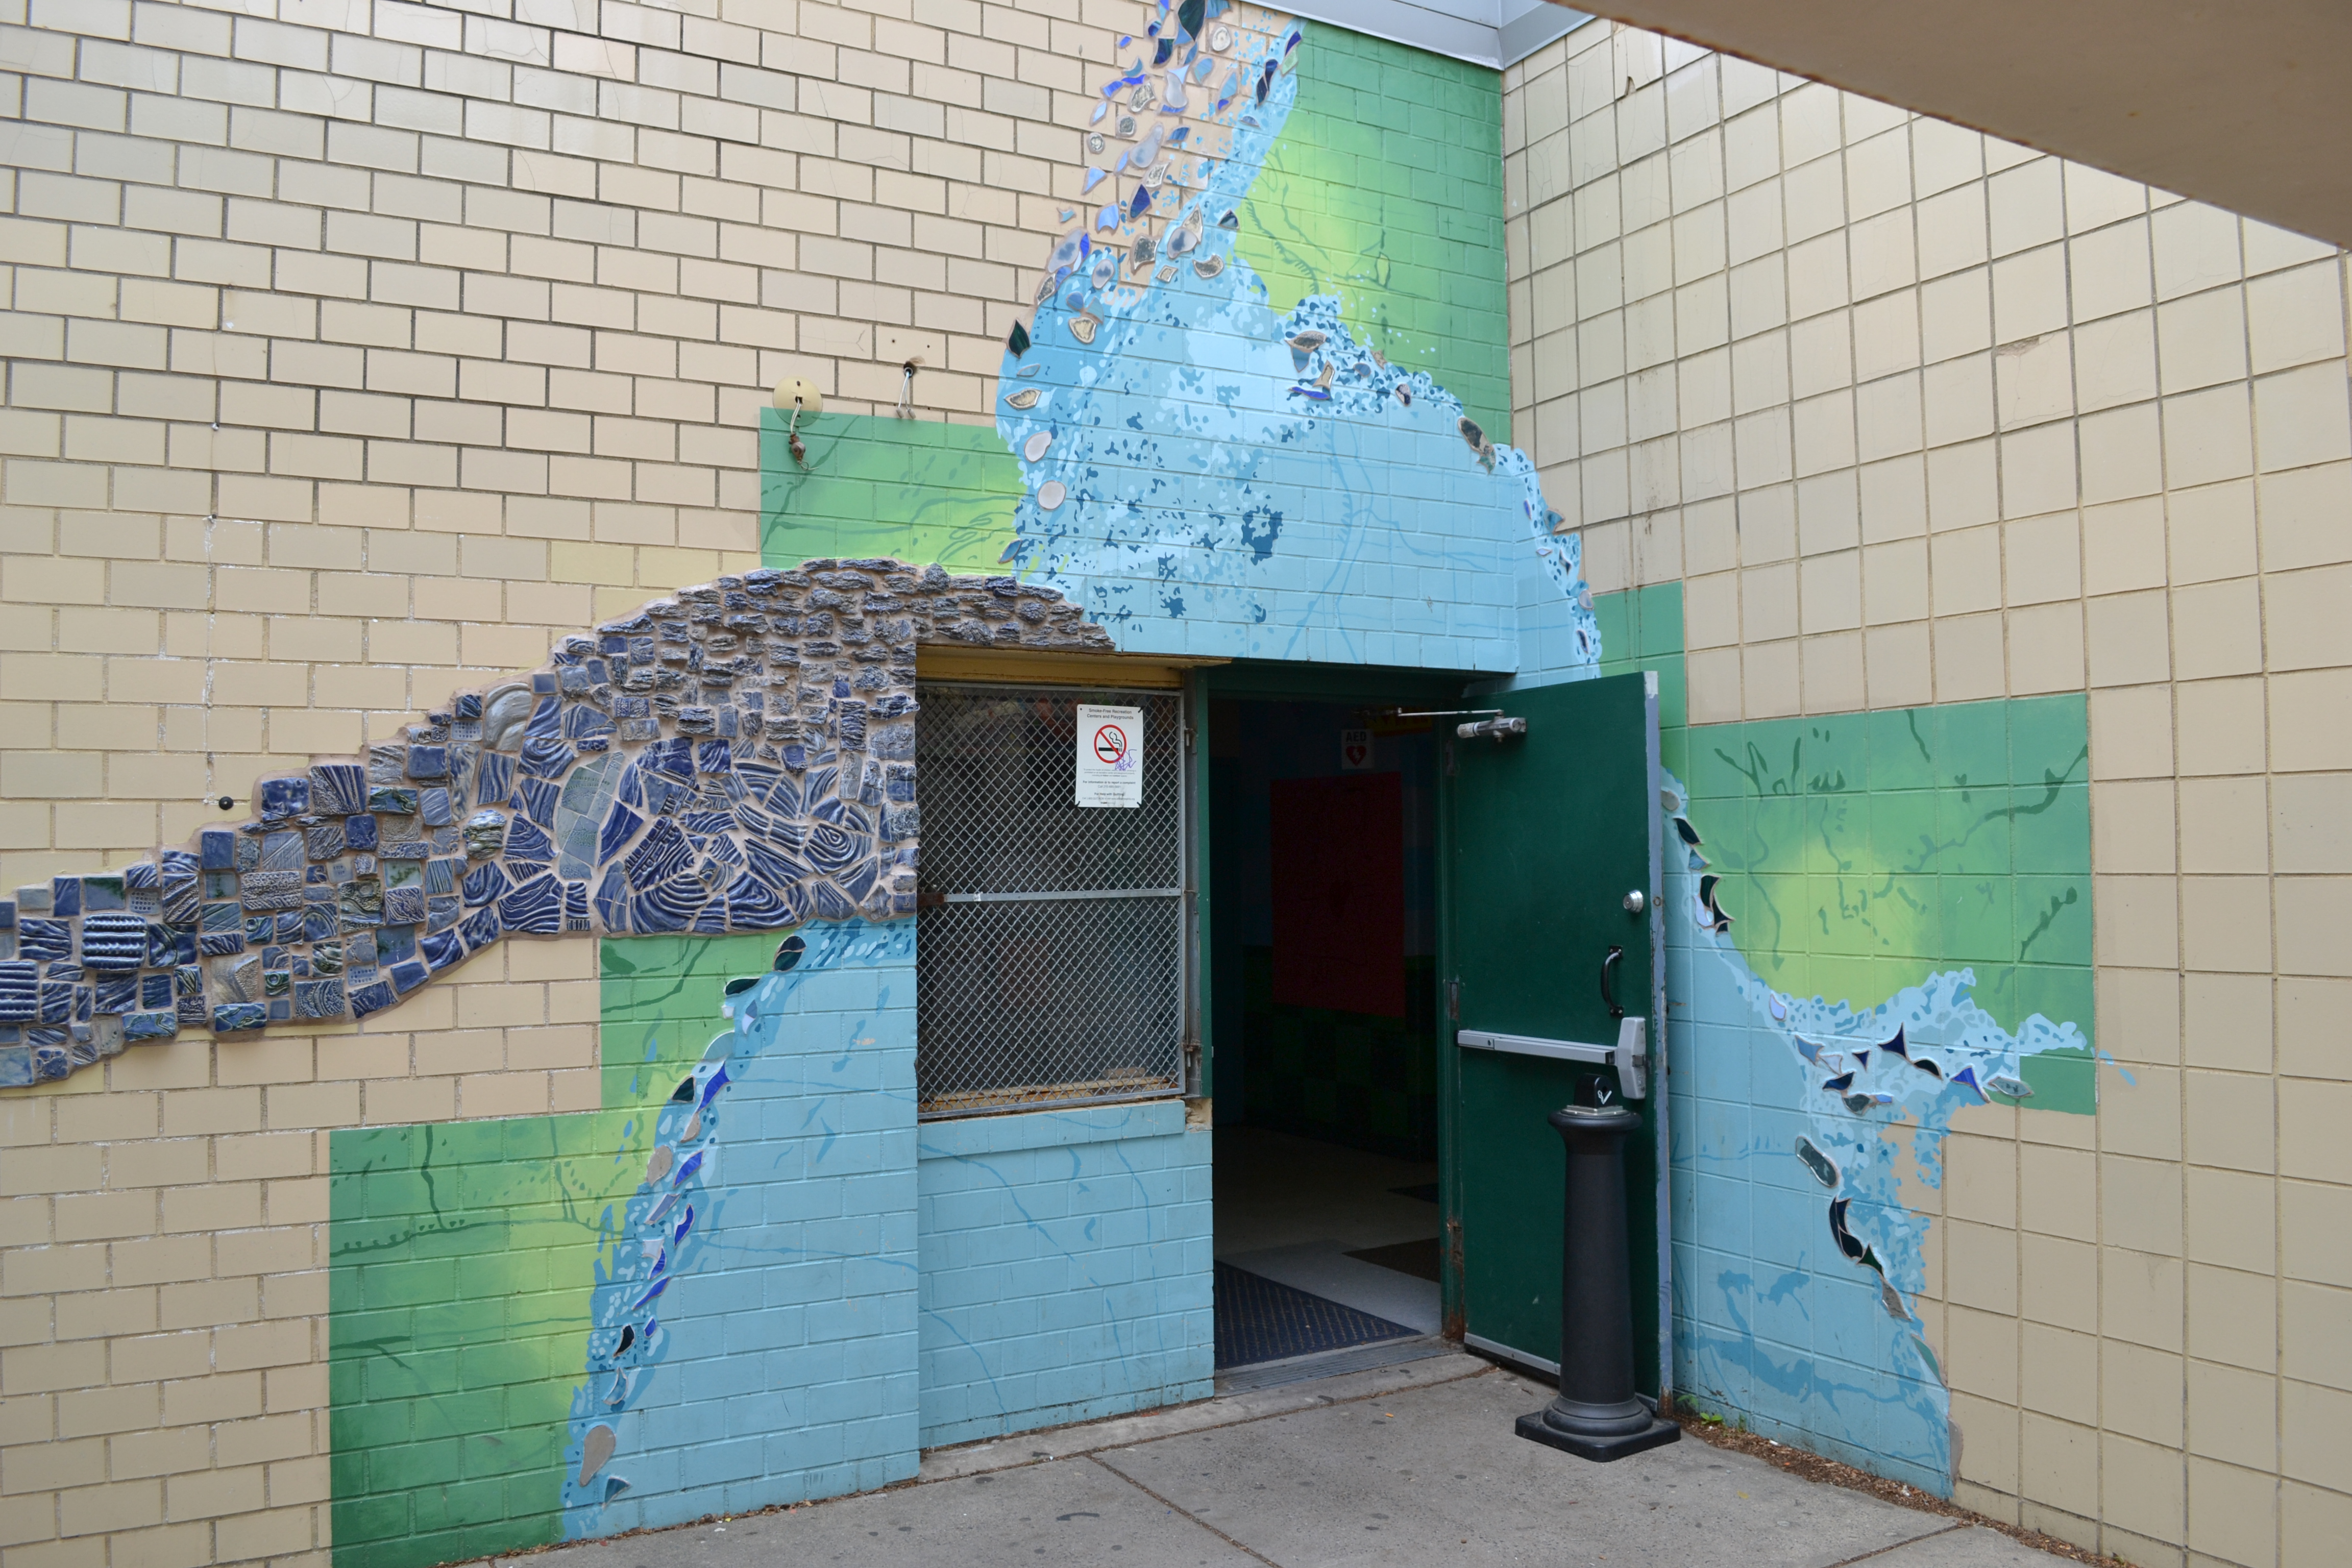 The Mural Arts initiative aims to connect the rec center to neighboring parks and the Delaware River